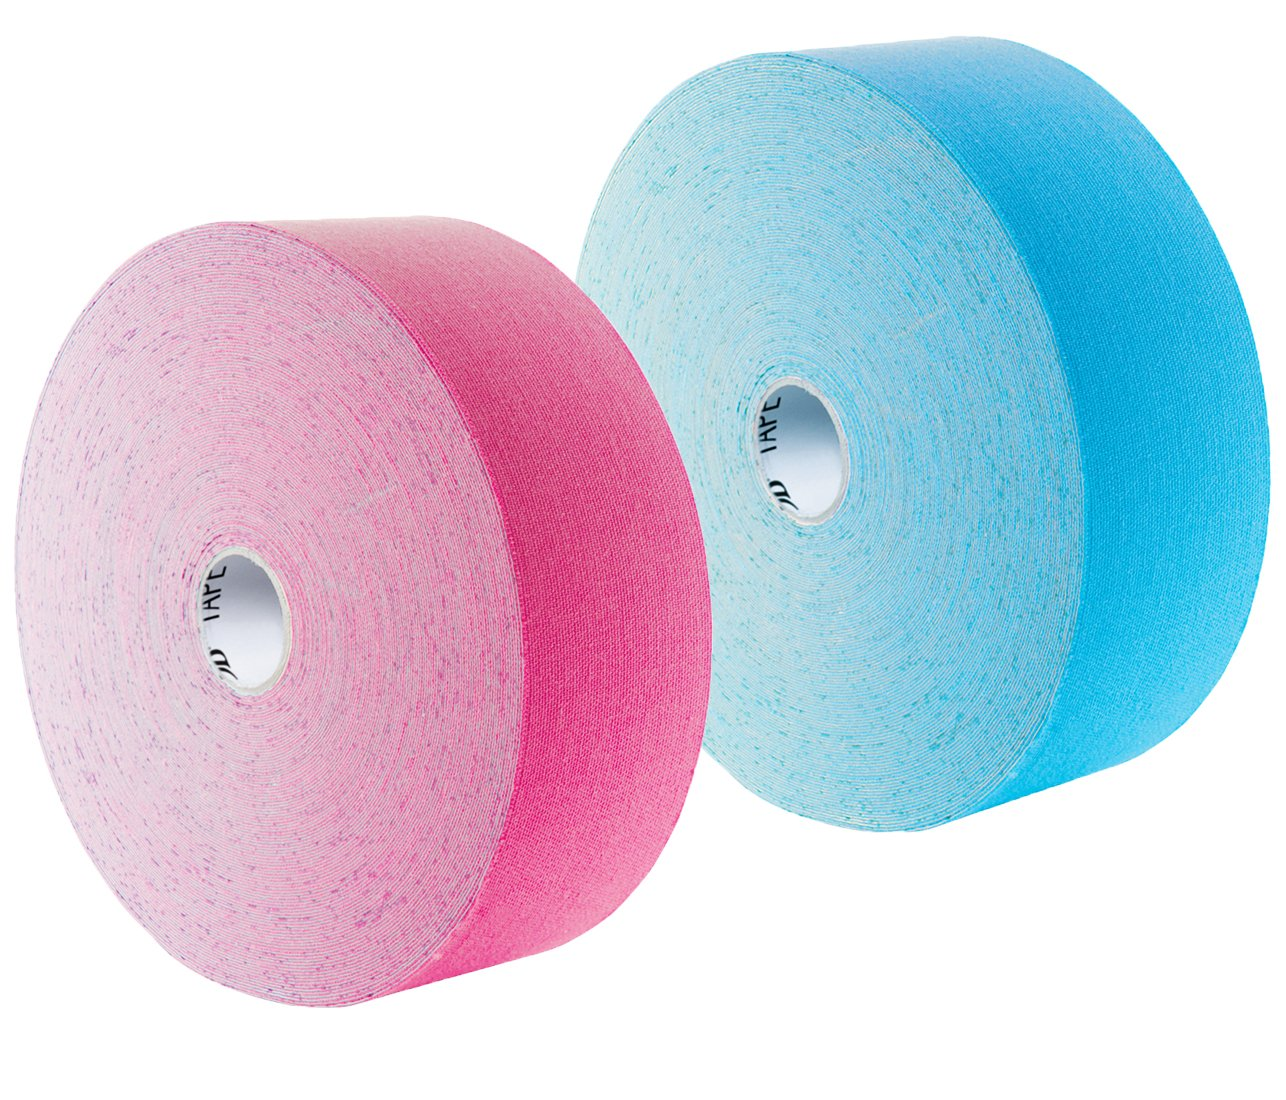 3B Scientific Kinesiology Tape - Water-Resistant, Air-Permeable Recovery Sports Athletic Aid - 2'' x 103 ft Rolls - Bundle of 2 Rolls - Blue, Pink